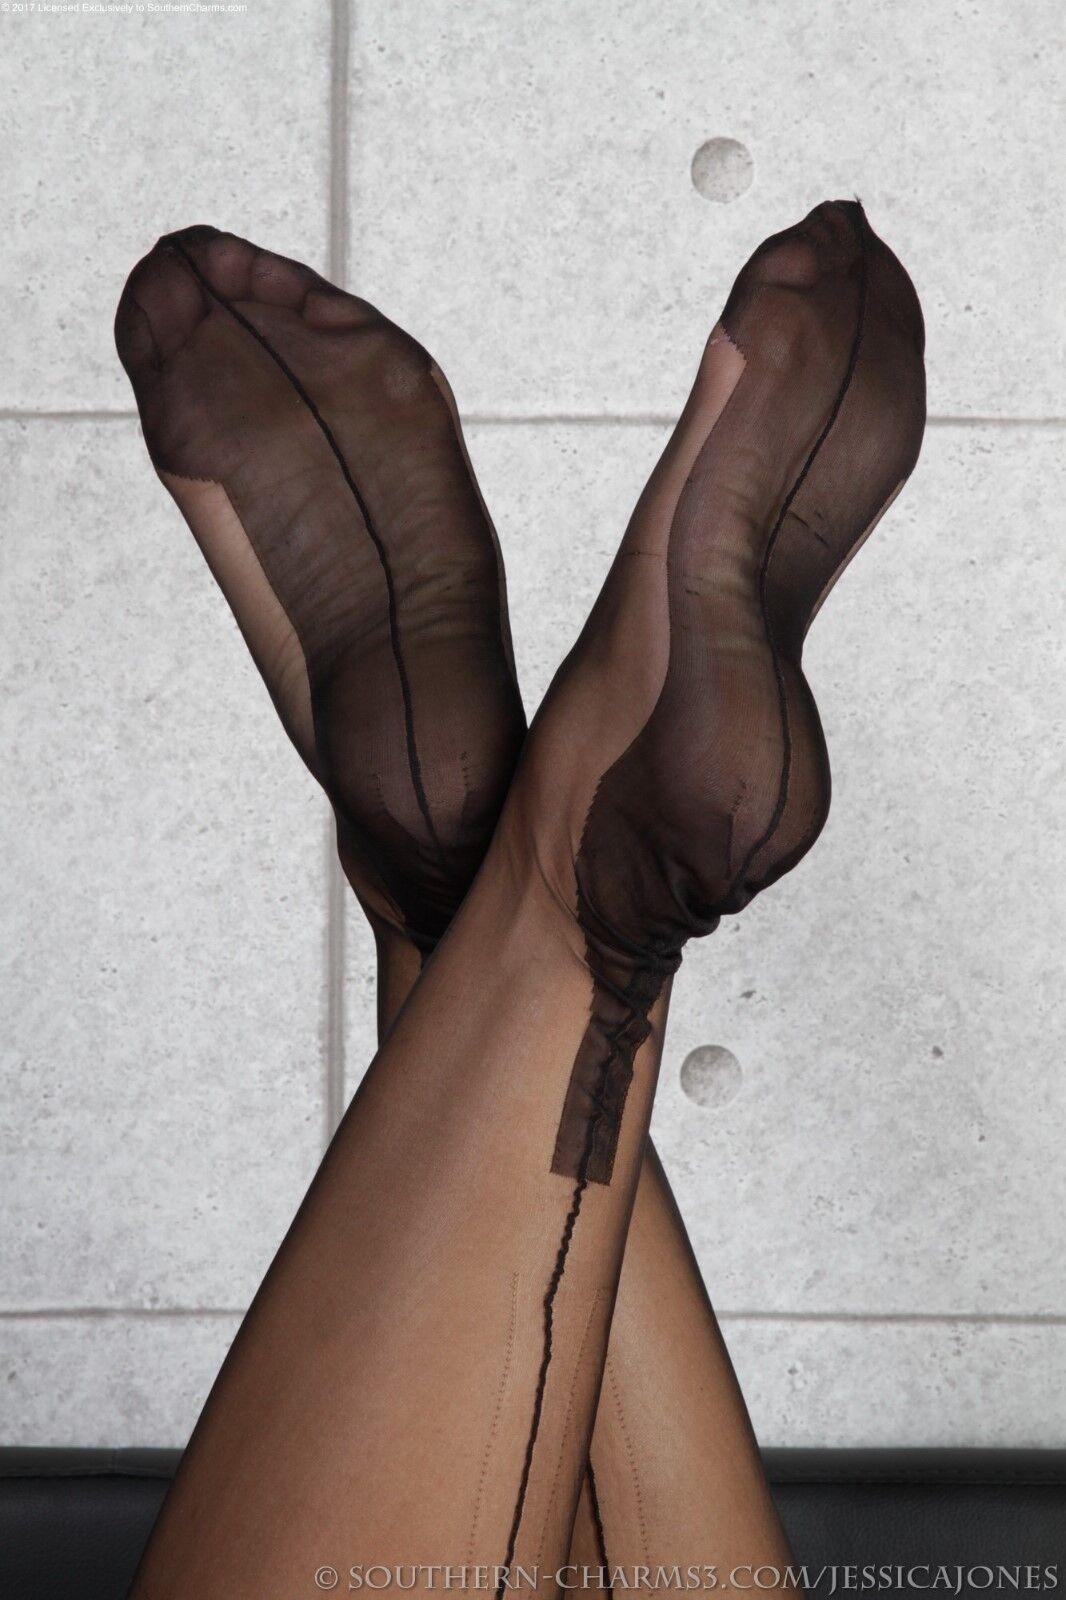 NEW GIO Fully Fashioned Cuban Heel Seamed Nylon Stockings Size Noir Size Stockings 8.5 X Small 5a77f3